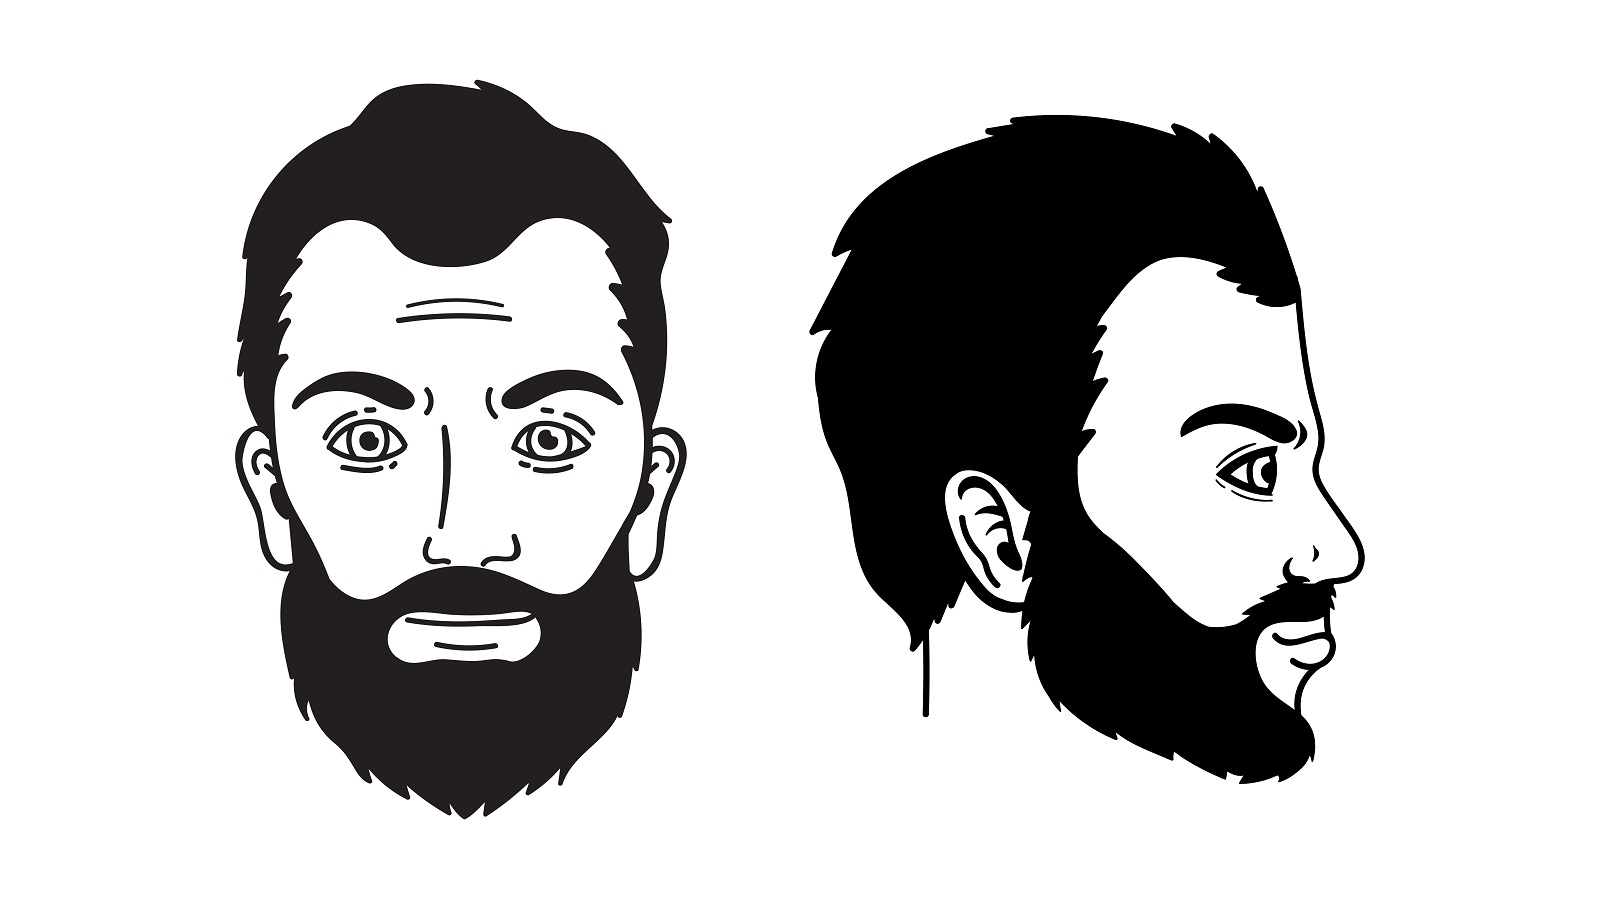 The Full Beard - Facial Hair Style